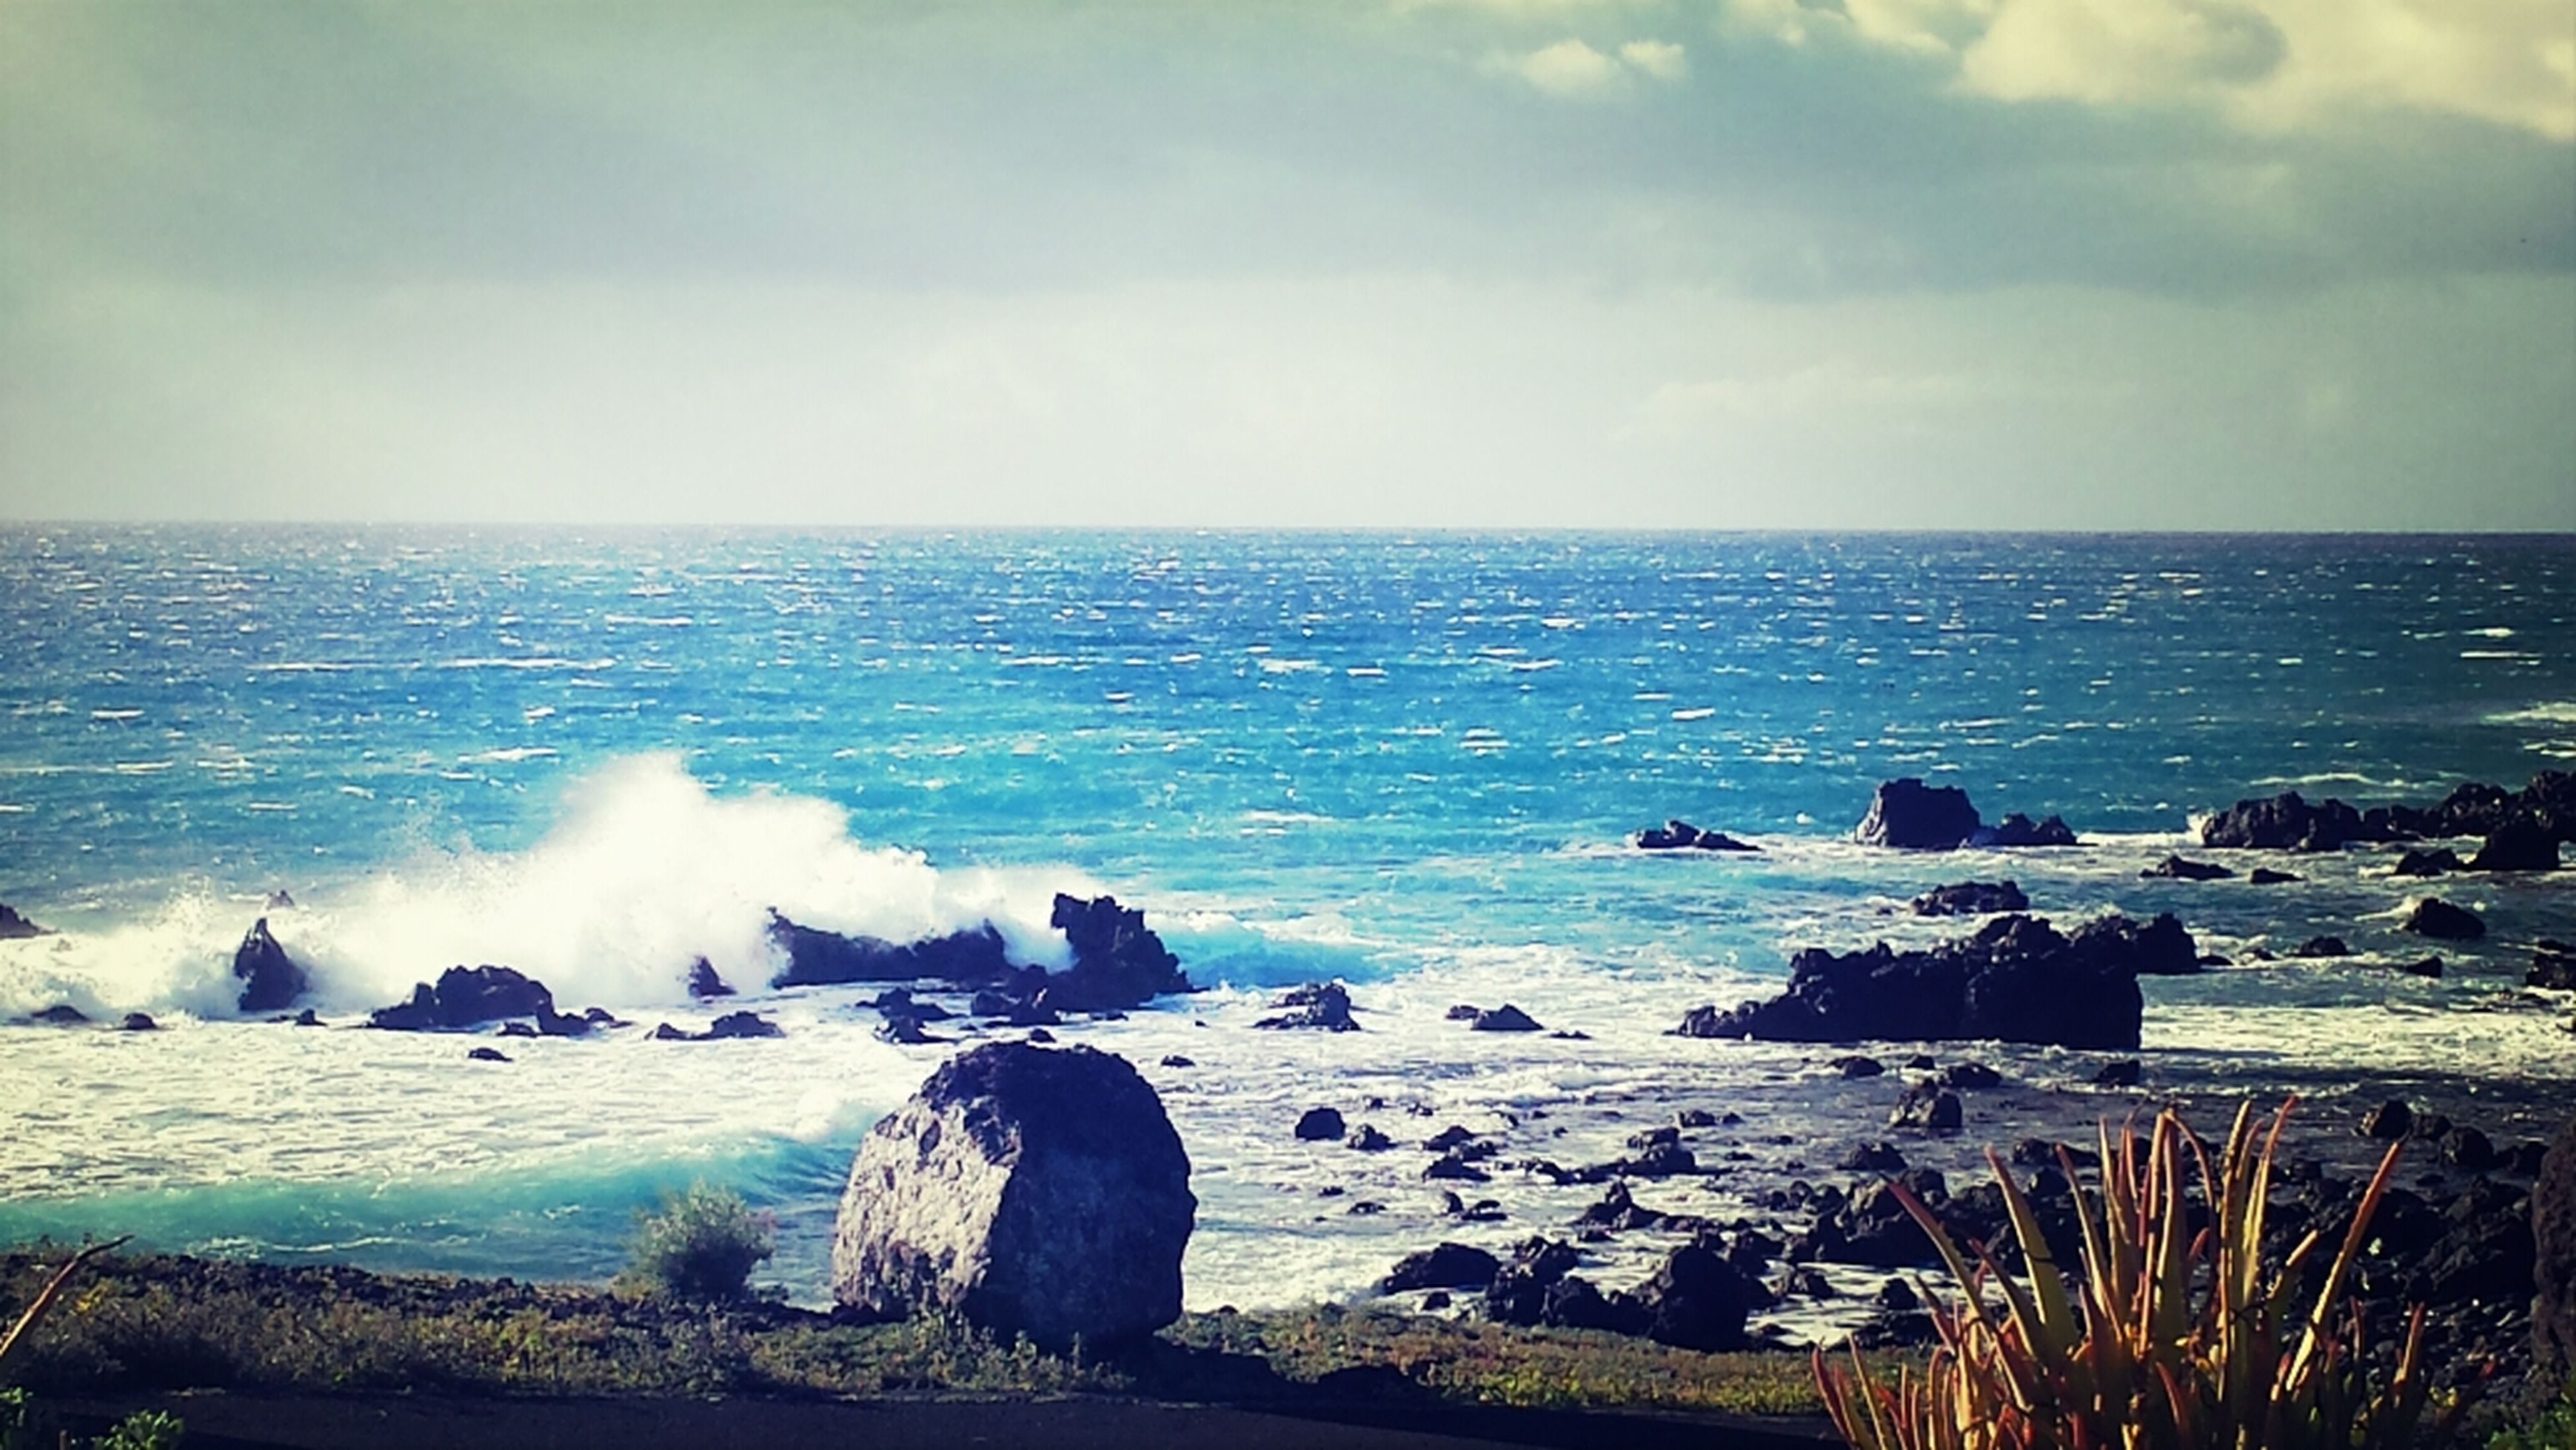 sea, horizon over water, water, sky, scenics, beauty in nature, rock - object, tranquil scene, tranquility, cloud - sky, nature, beach, shore, wave, idyllic, coastline, surf, cloud, remote, rock formation